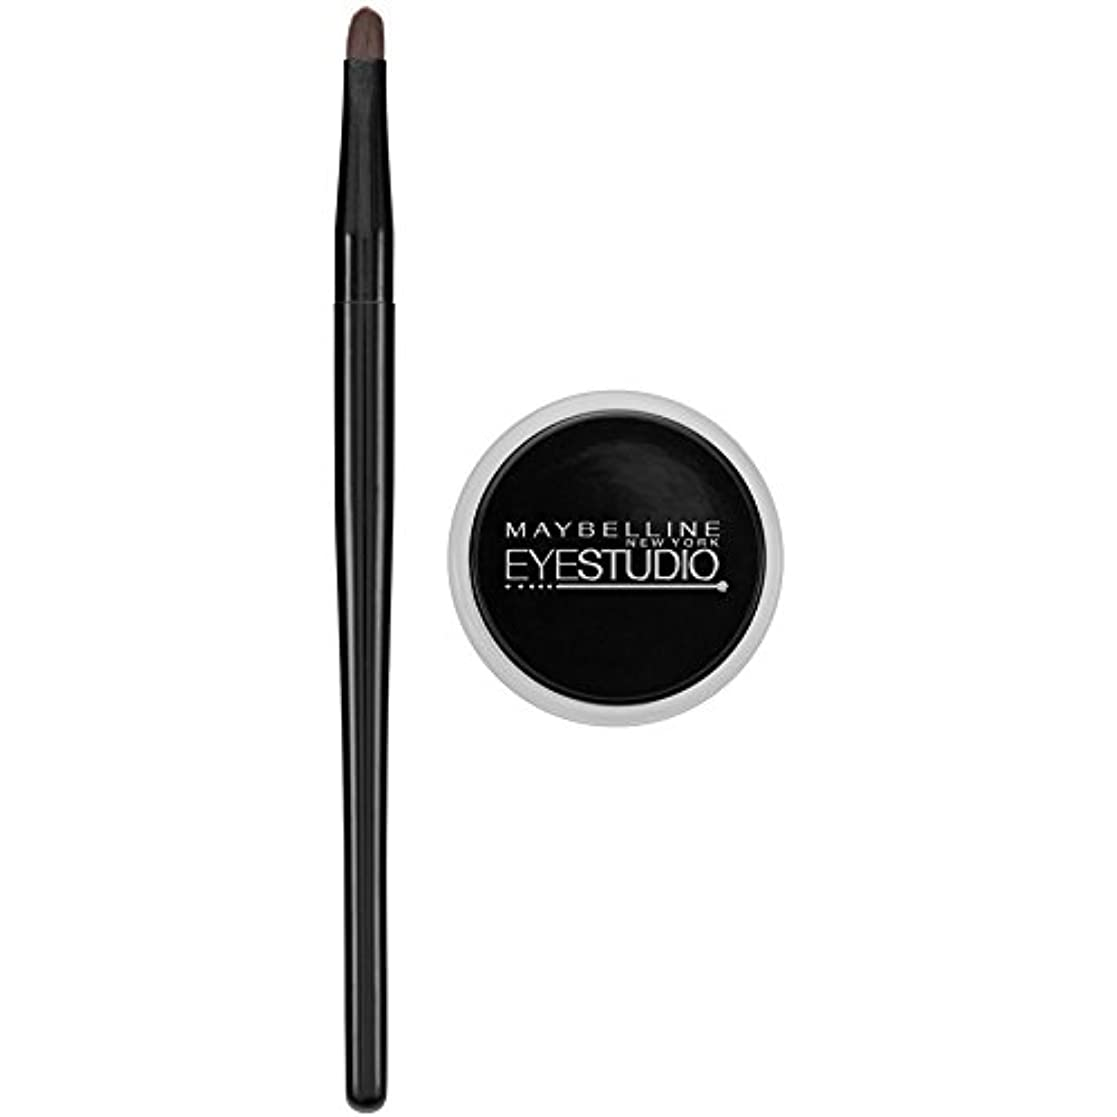 キャッチ文芸姉妹MAYBELLINE Eye Studio Lasting Drama Gel Eyeliner - Blackest Black 950 (並行輸入品)